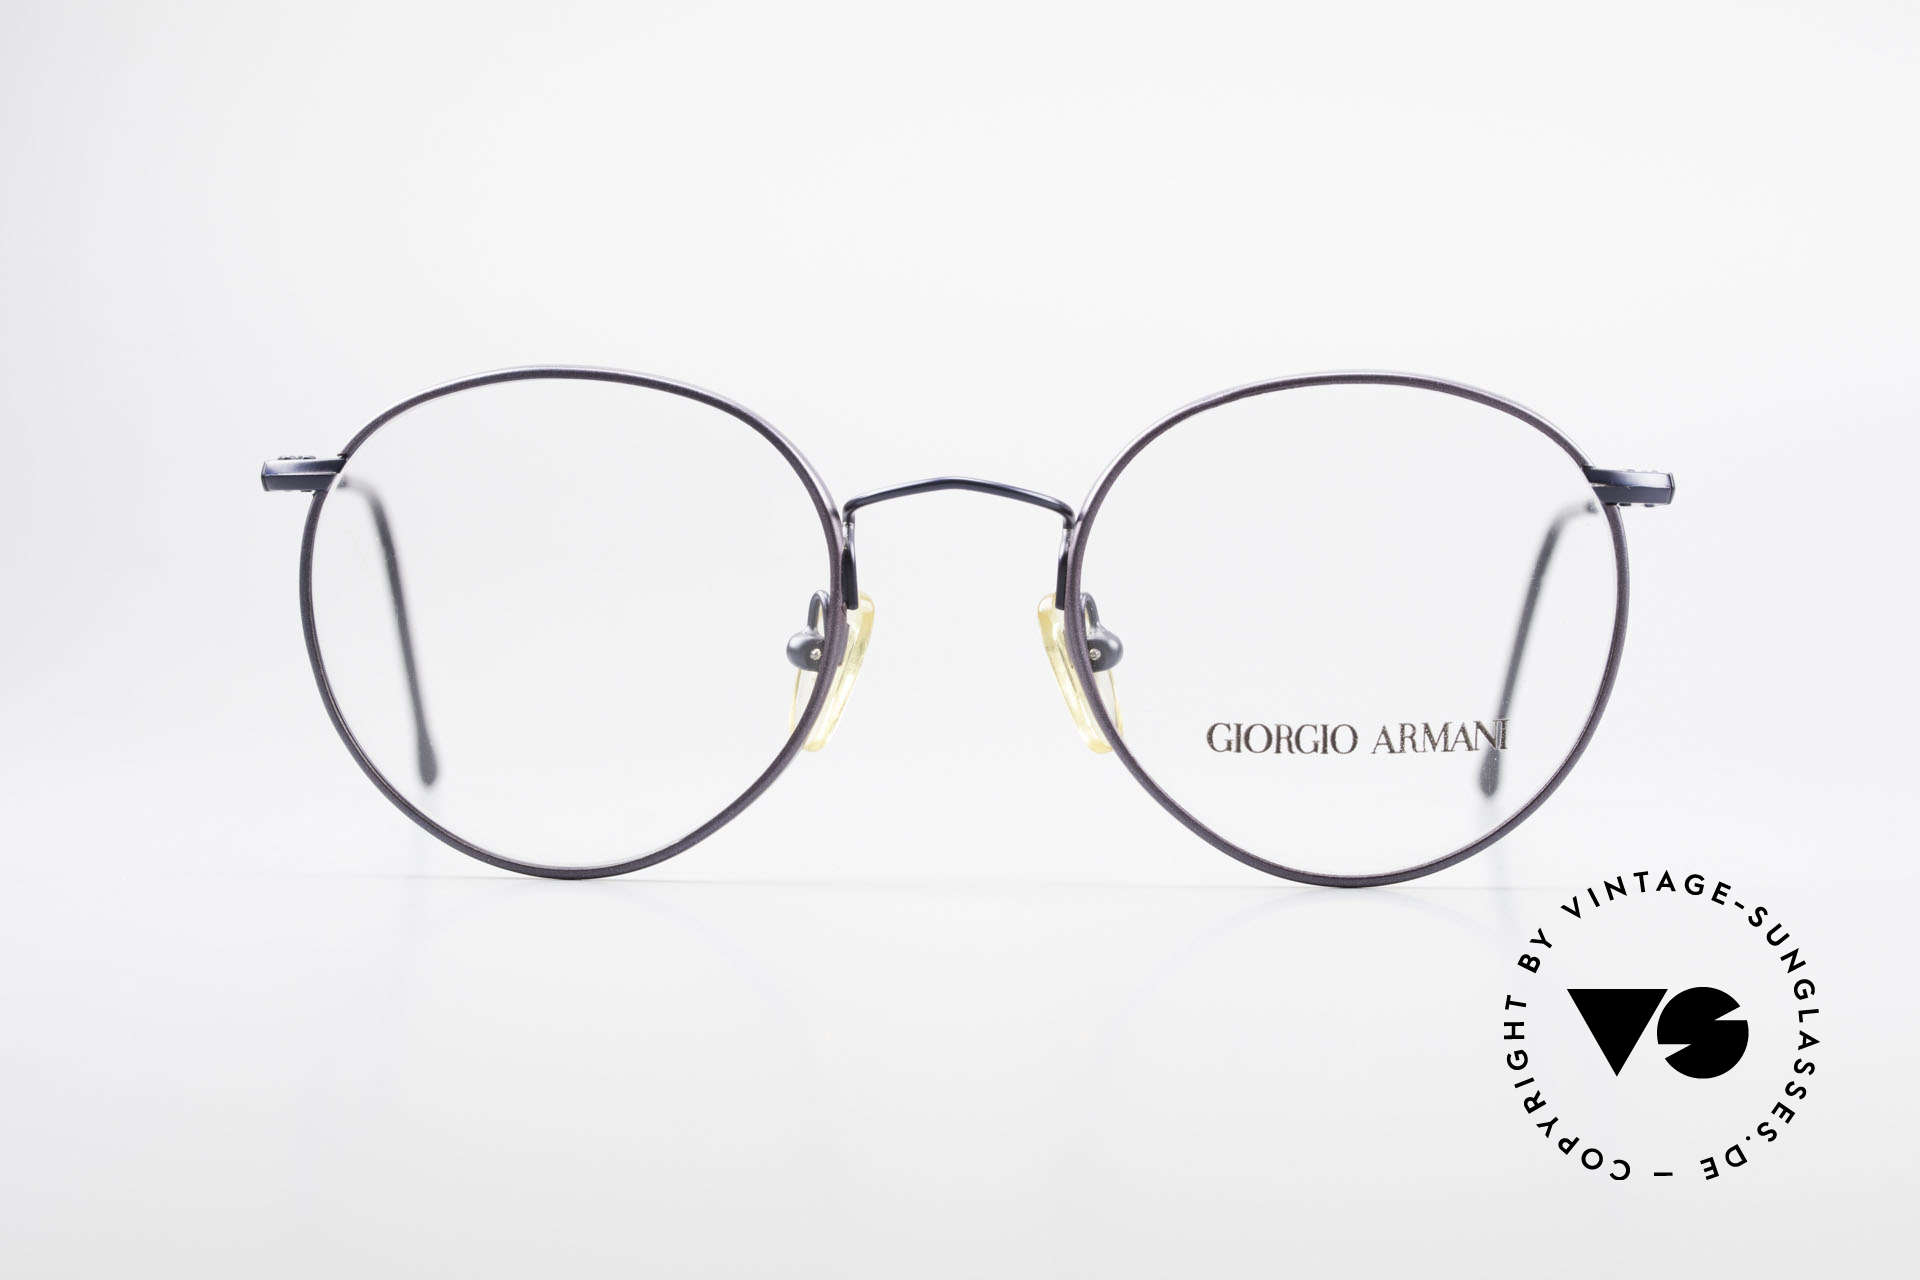 Giorgio Armani 253 Panto Vintage Frame Classic, world famous 'panto'-design .. a real eyewear classic, Made for Men